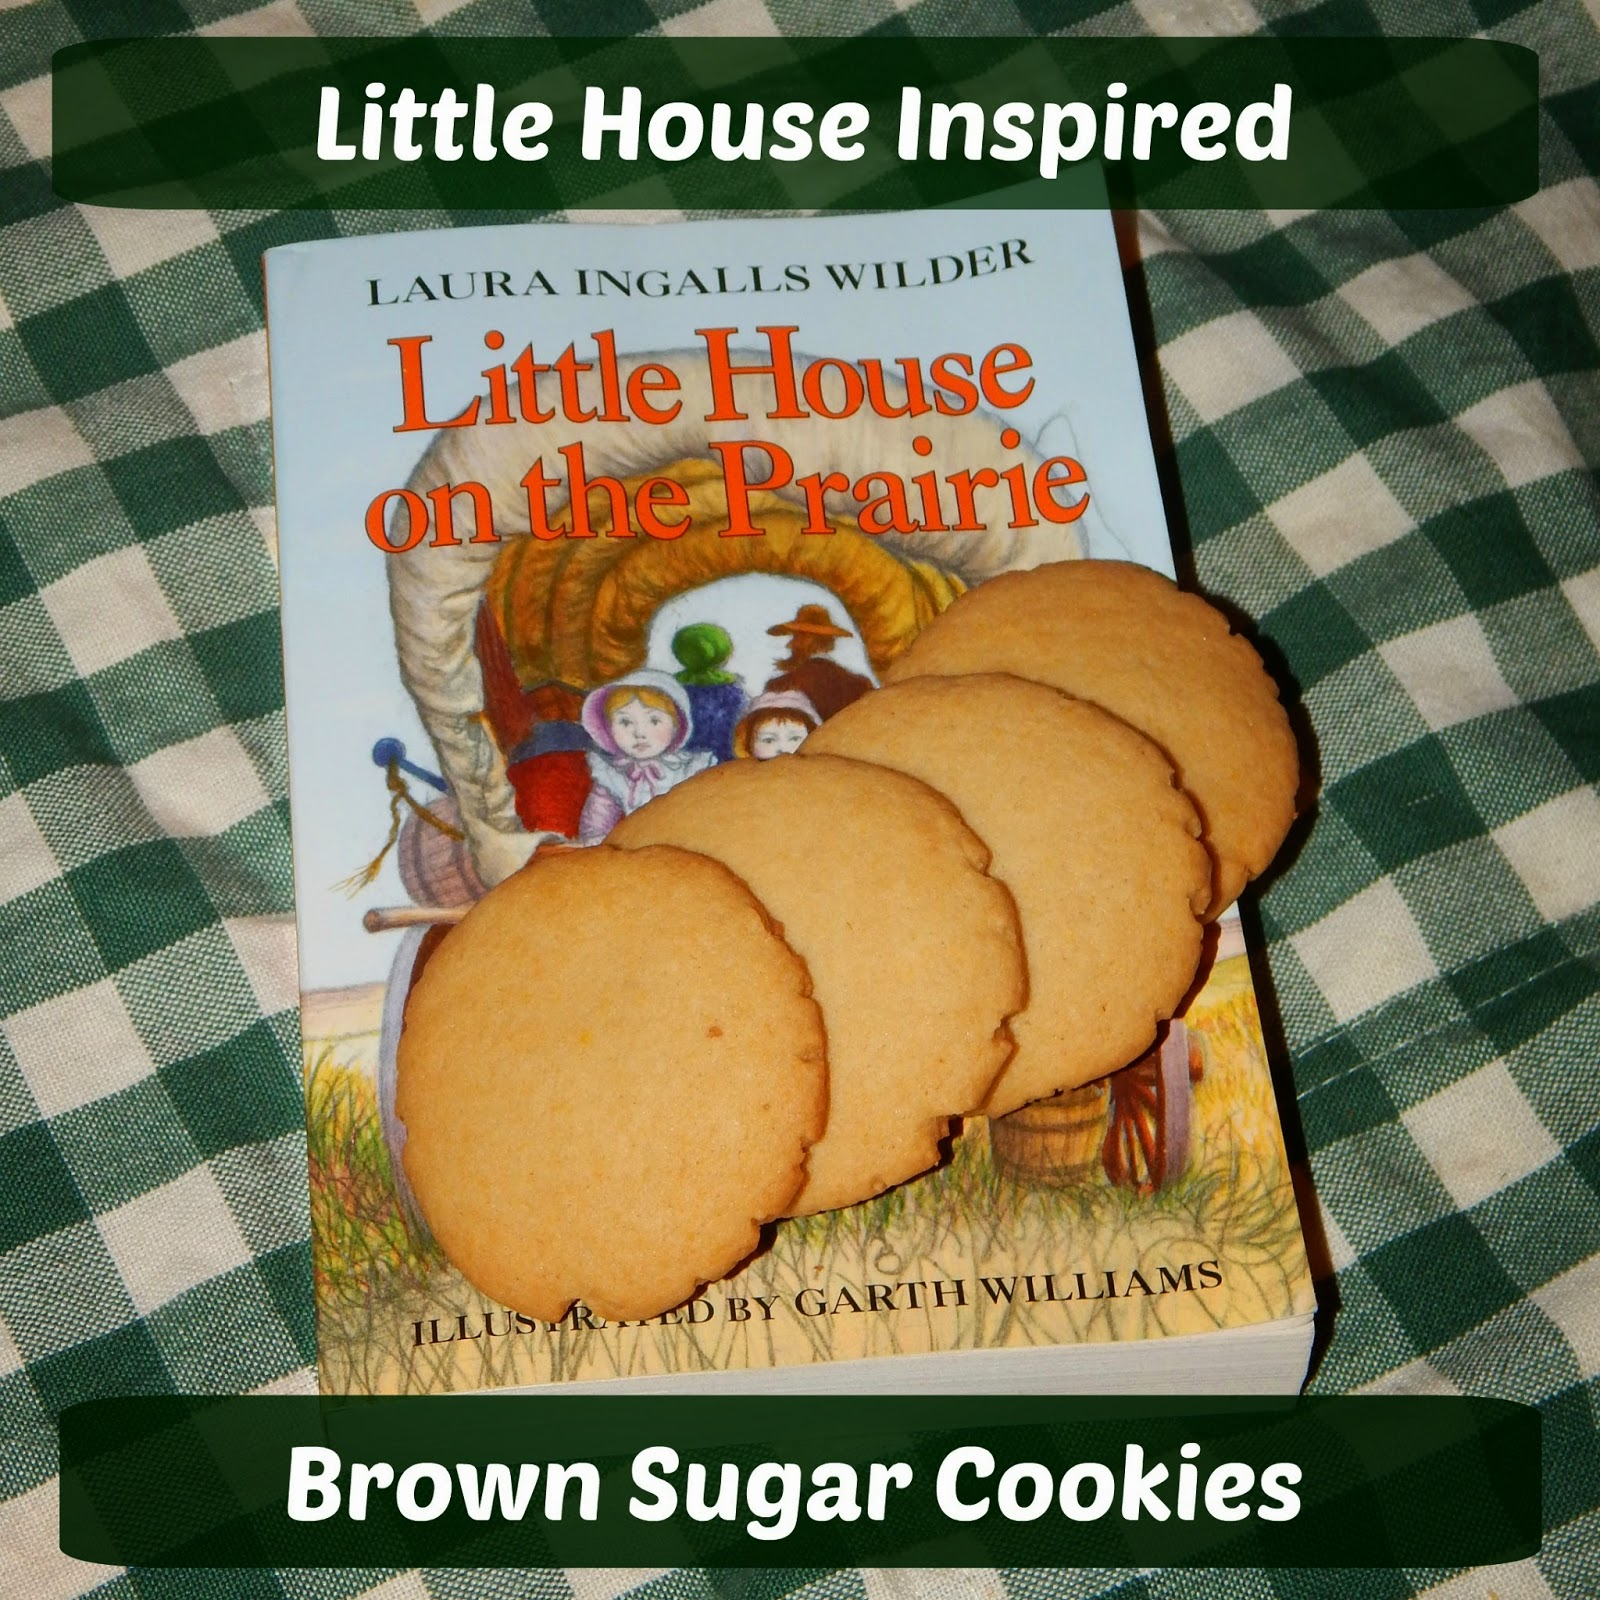 Little House Inspired Brown Sugar Cookies